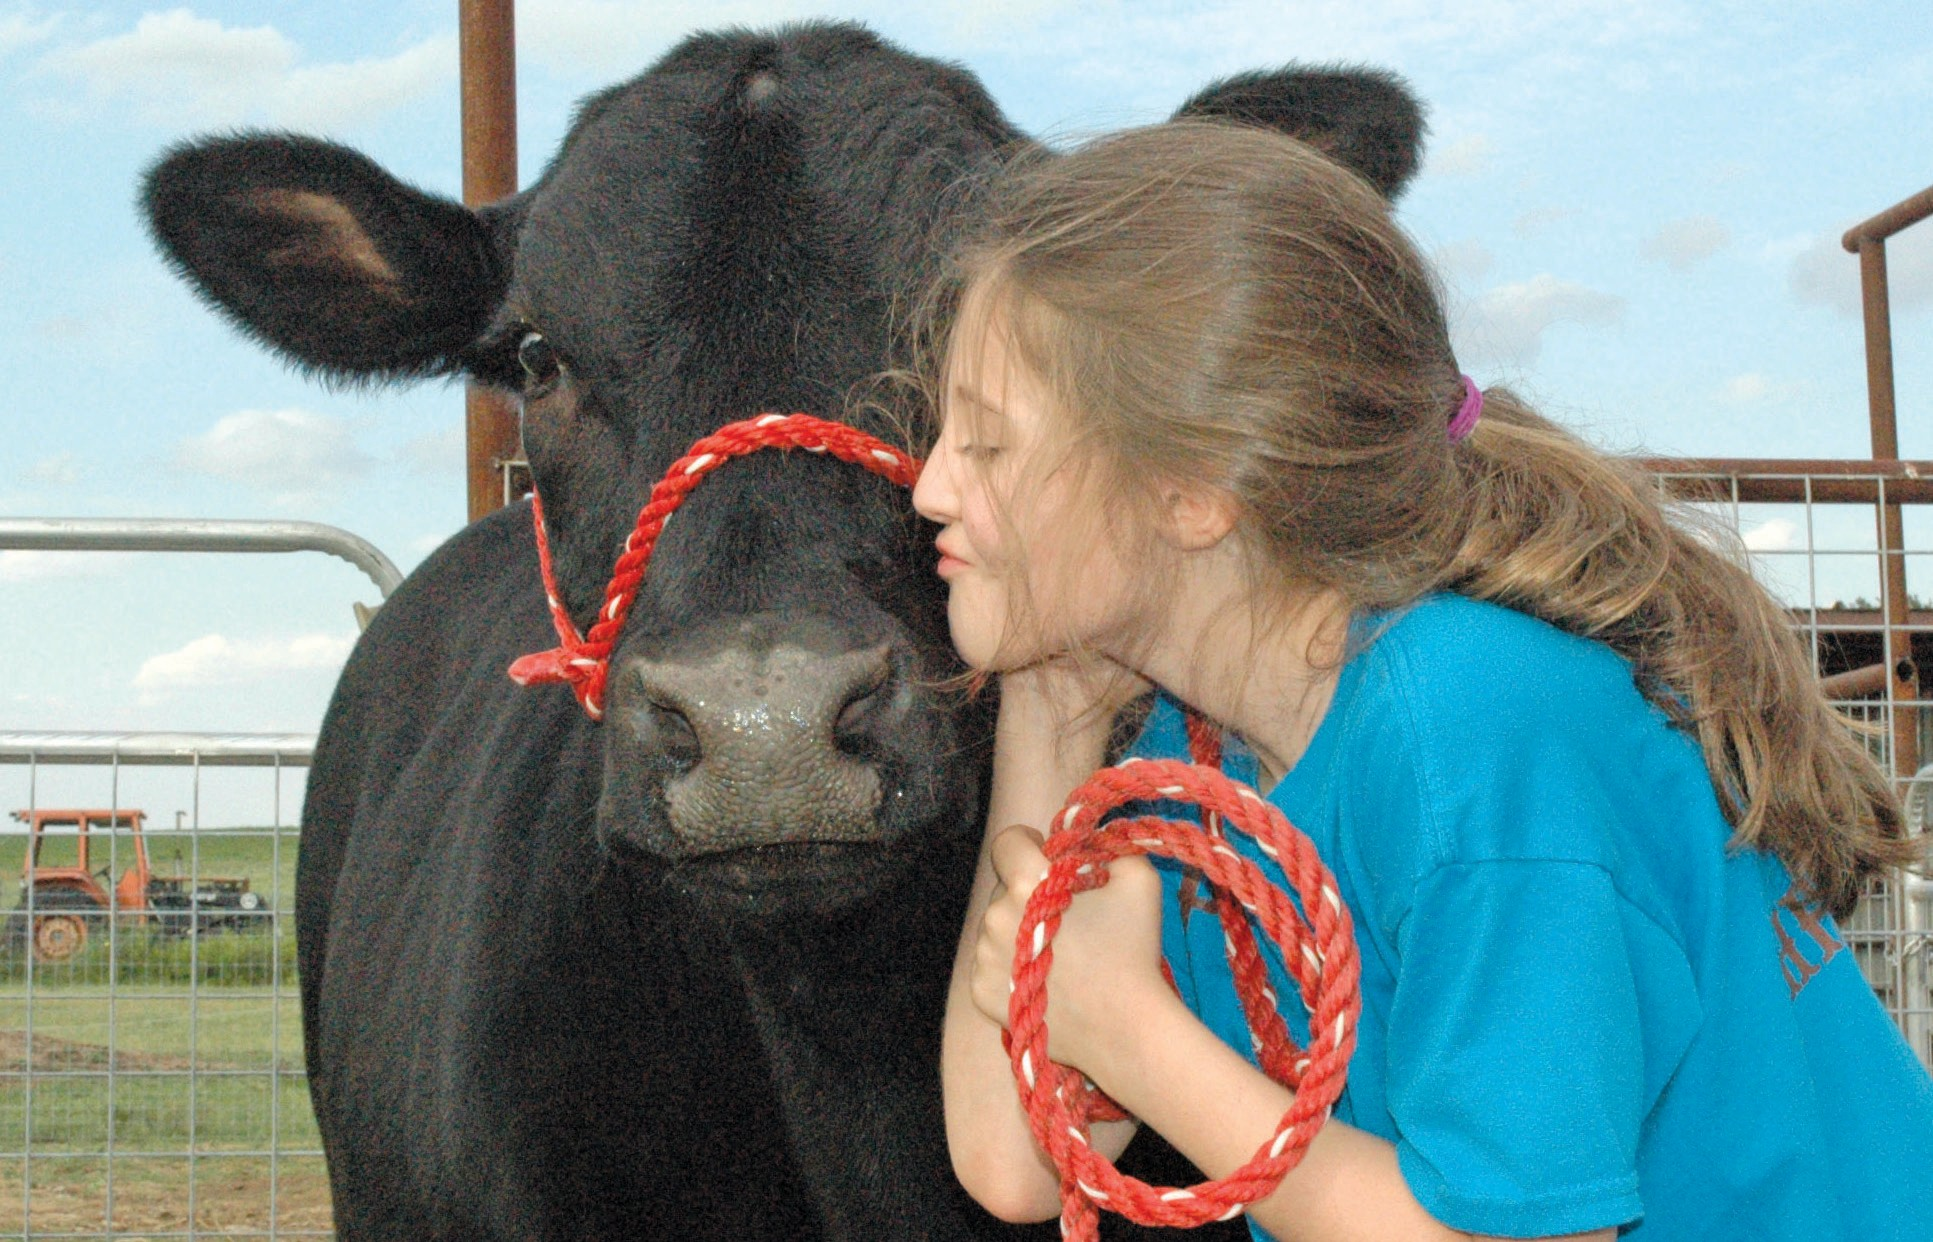 """Nine-year-old Morgan Winter and her steer """"Tiny"""" will be at the Atascosa County Fair this weekened. The prospect and home arts show are Saturday and Sunday, October 4-5. See pages 10-11C for the complete schedule. Morgan is the daughter of David and Kim Winter. The homeschooled fourth grader is a member of the Poteet 4-H."""